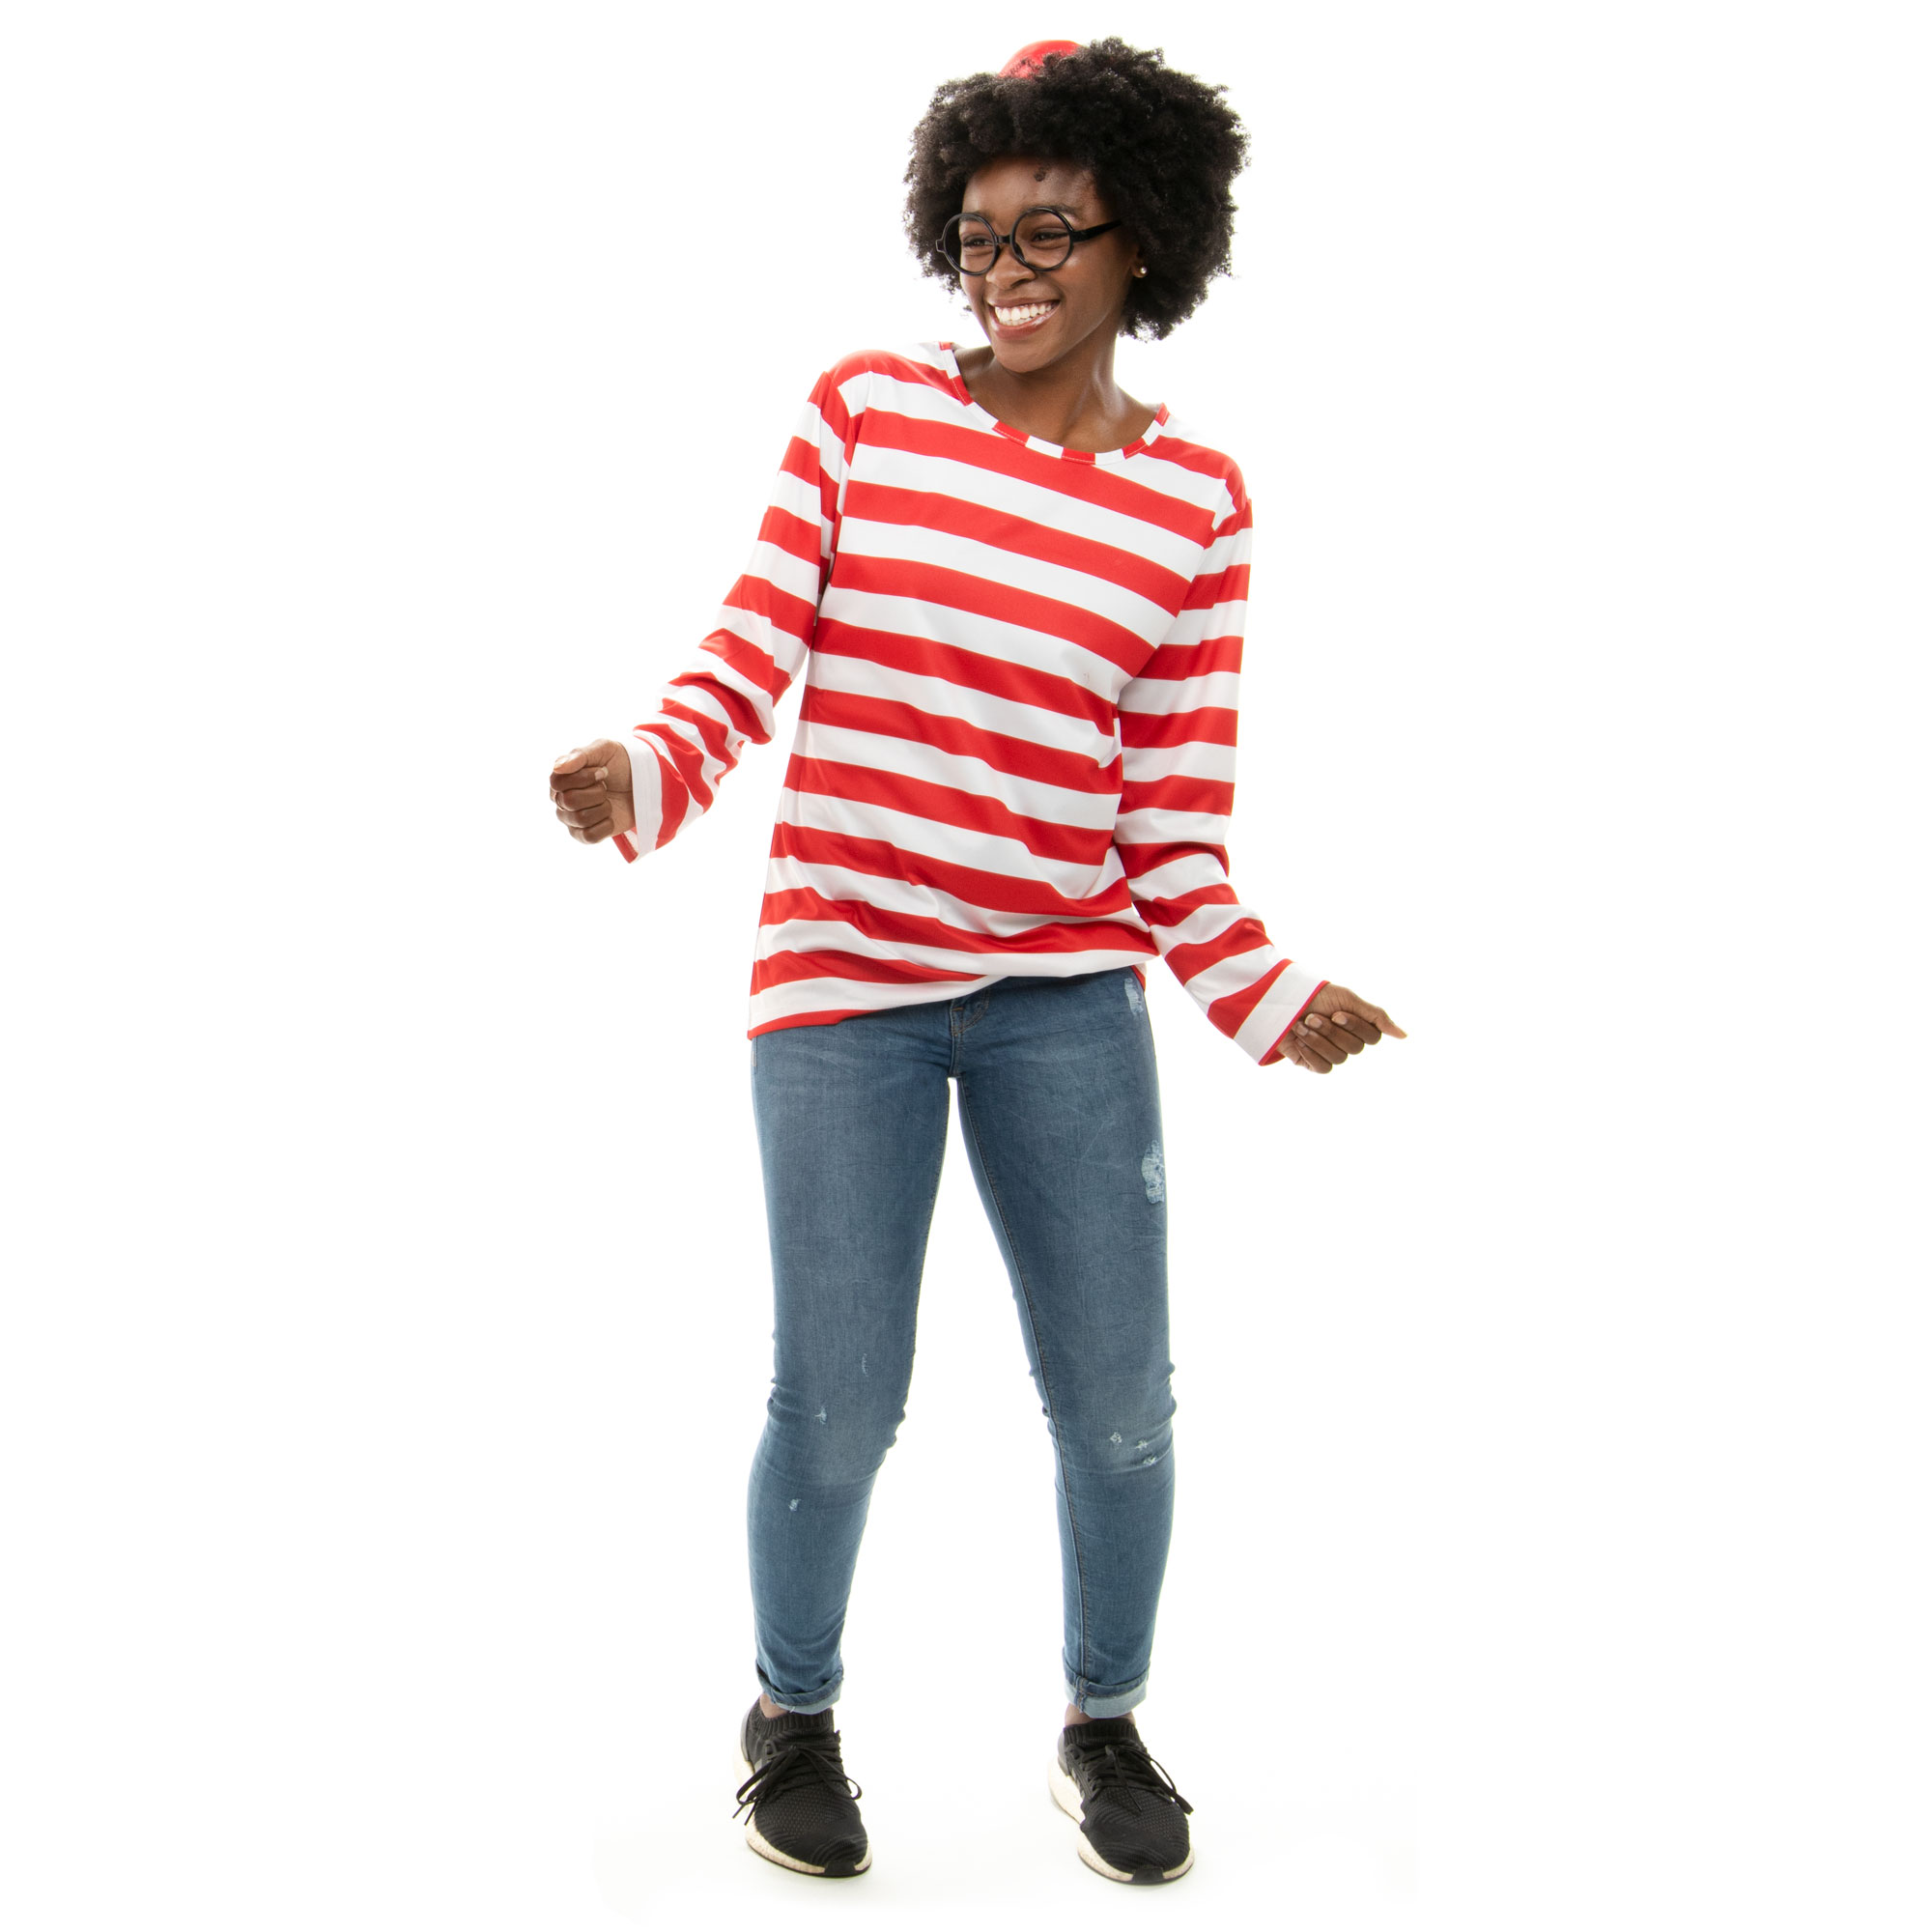 Where's Wally Halloween Costume - Women's Cosplay Outfit, S